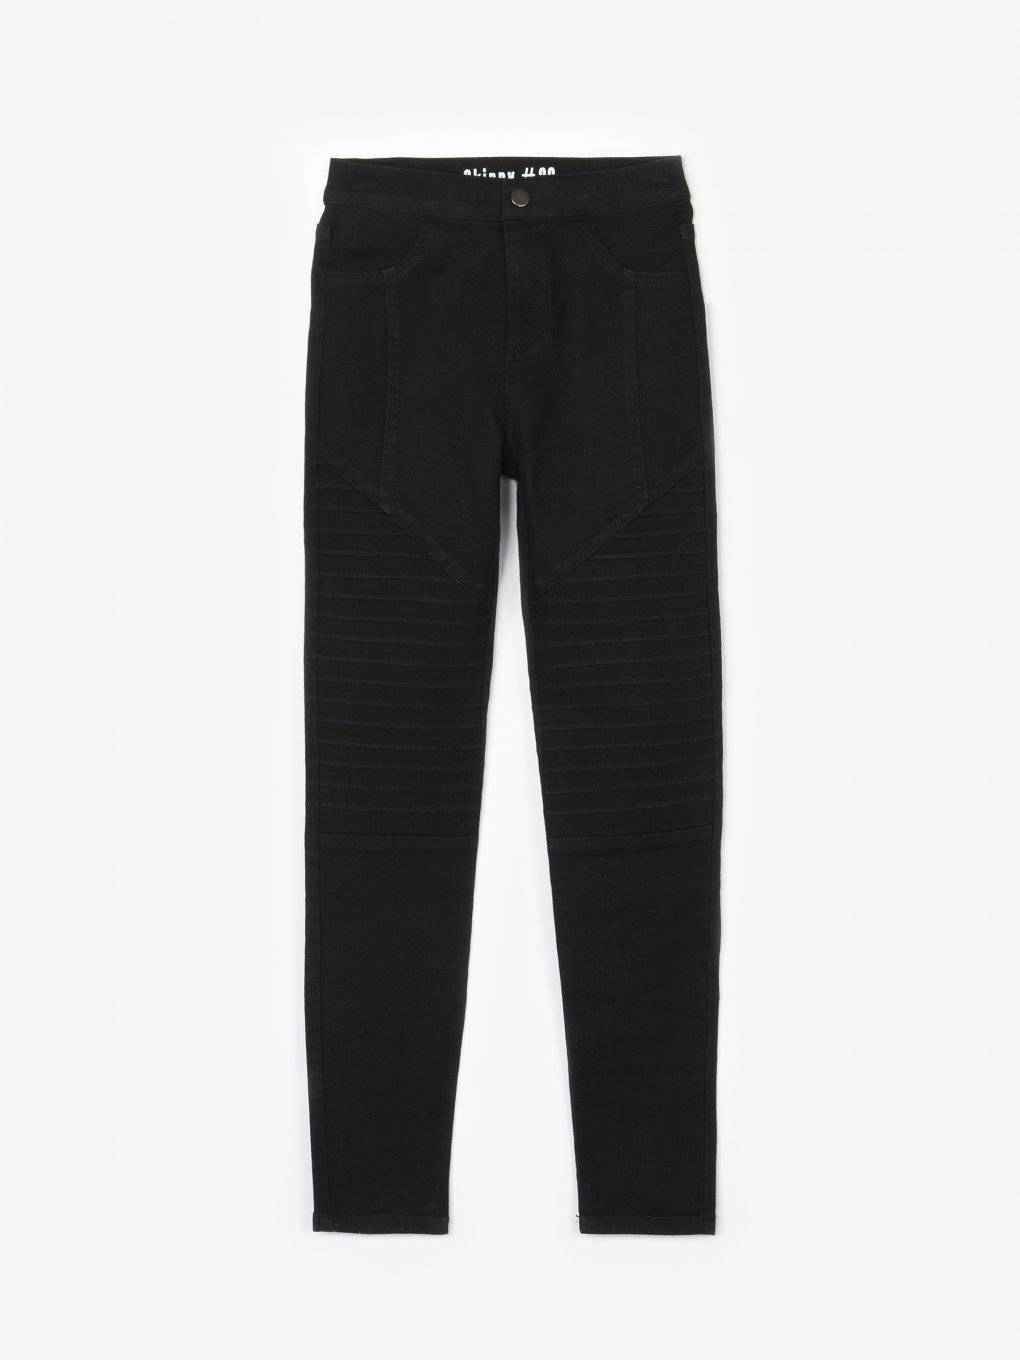 High waisted elastic biker trousers